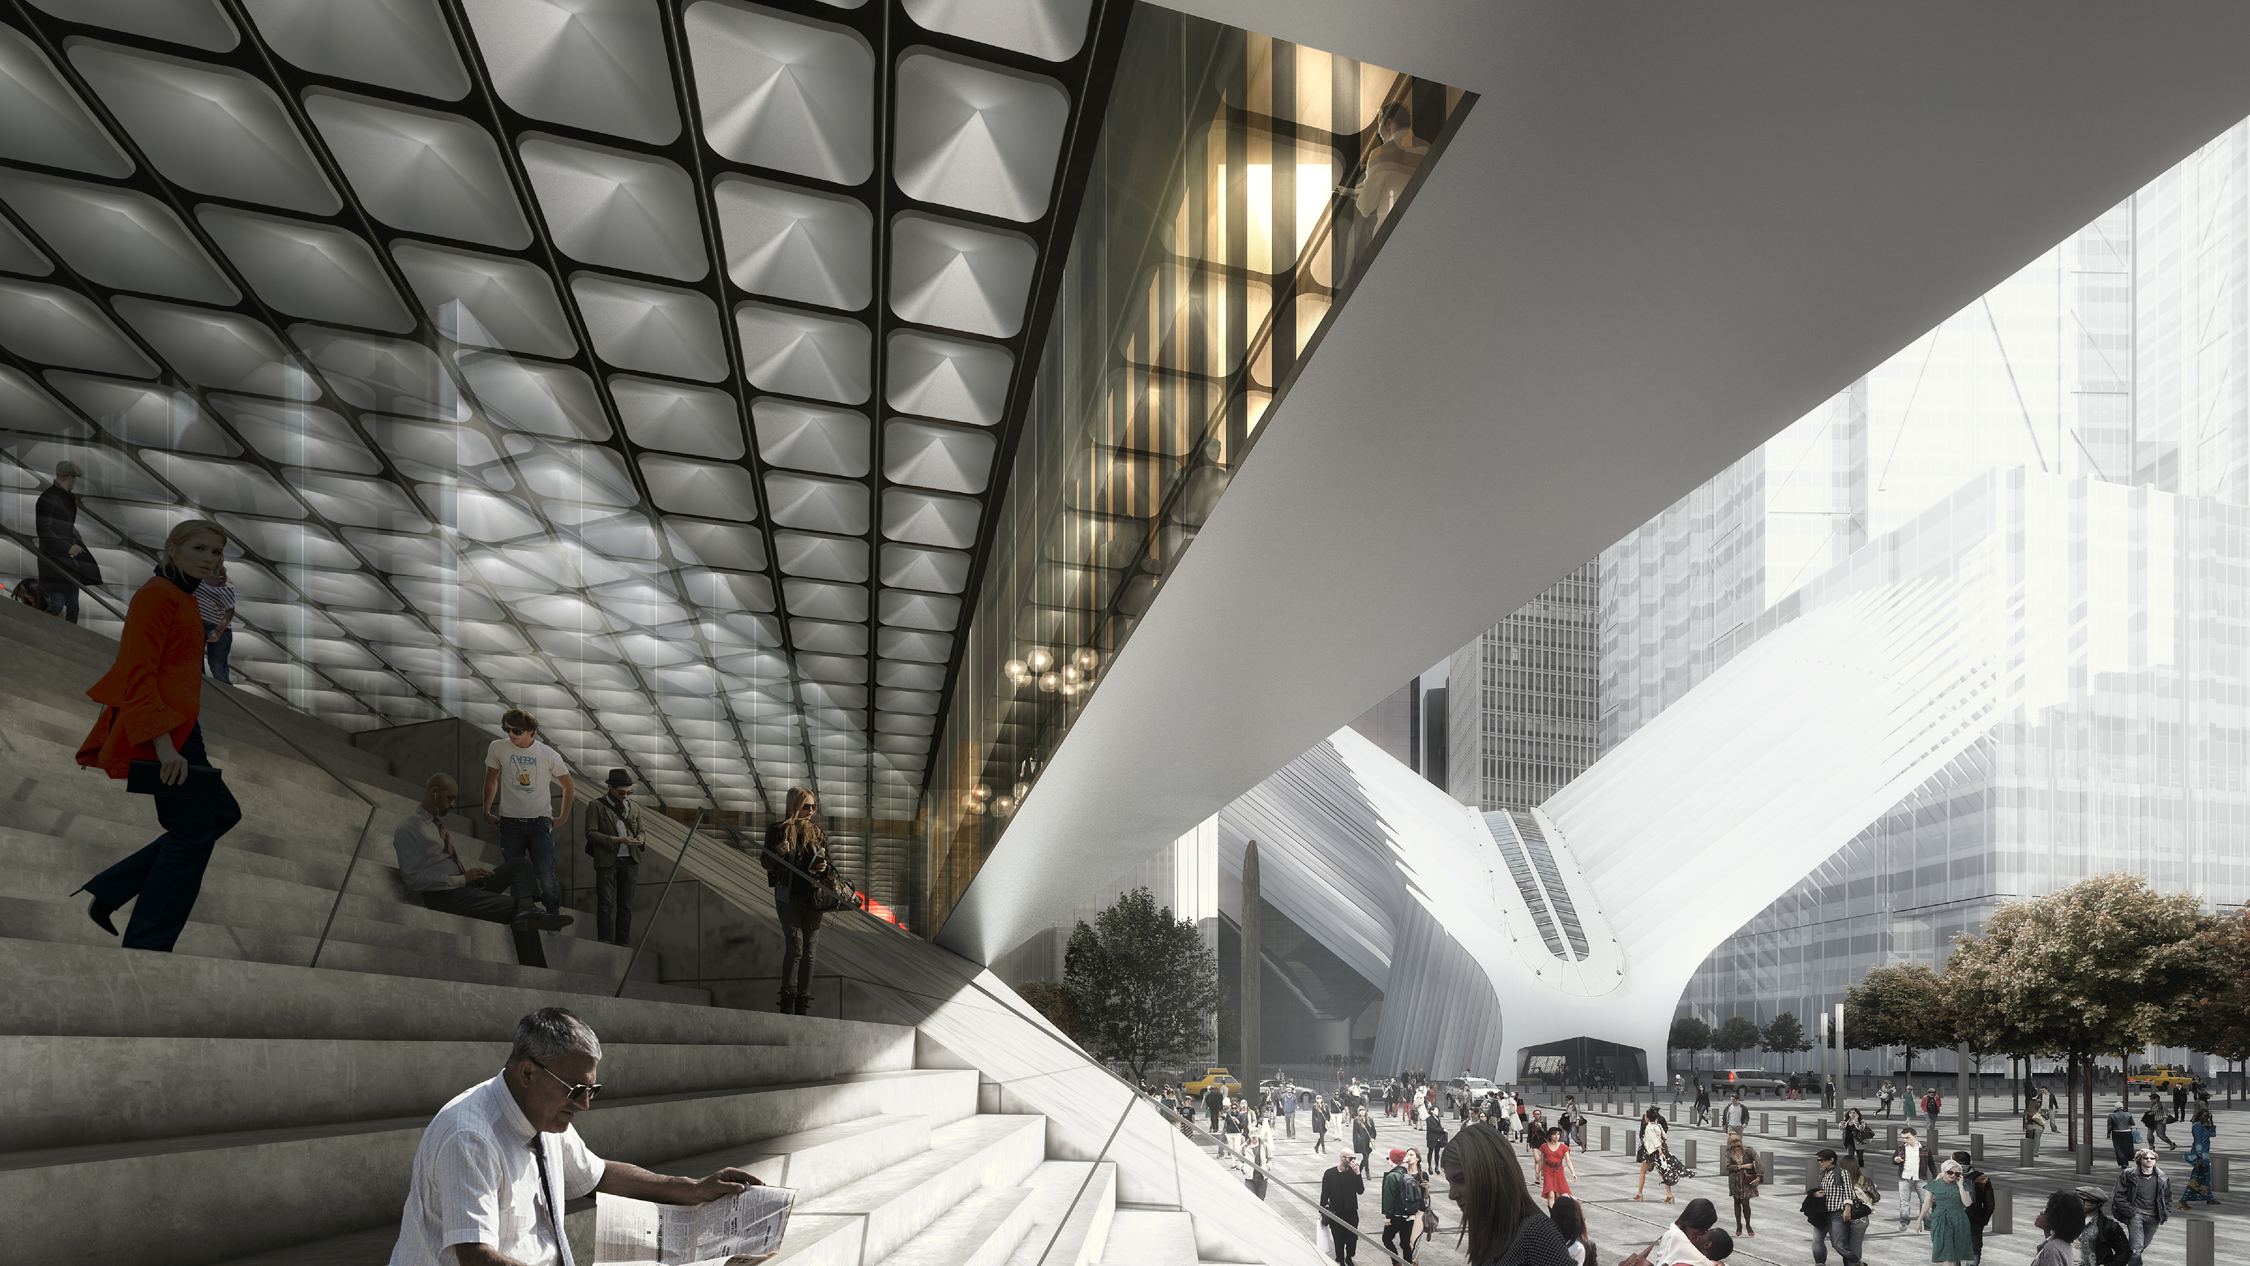 Day rendering of the exterior stairs at the Ronald O. Perelman Performing Arts Center at the World Trade Center. Rendering by LUXIGON